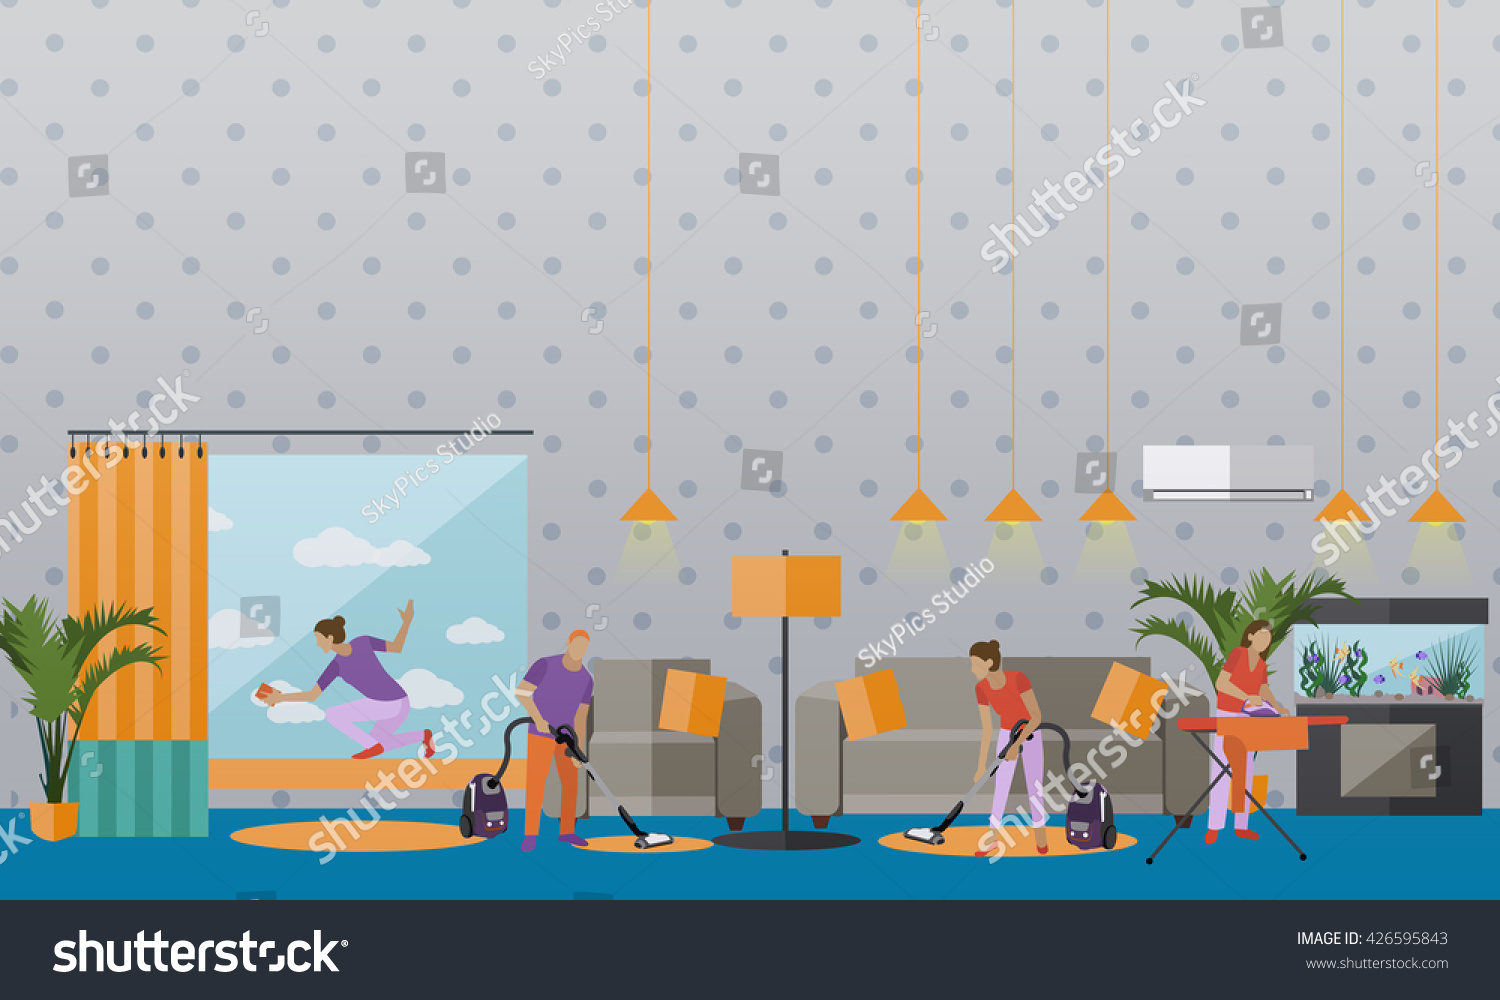 Cleaning Service Concept Vector Banner People Stock Vector 426595843 Shutterstock